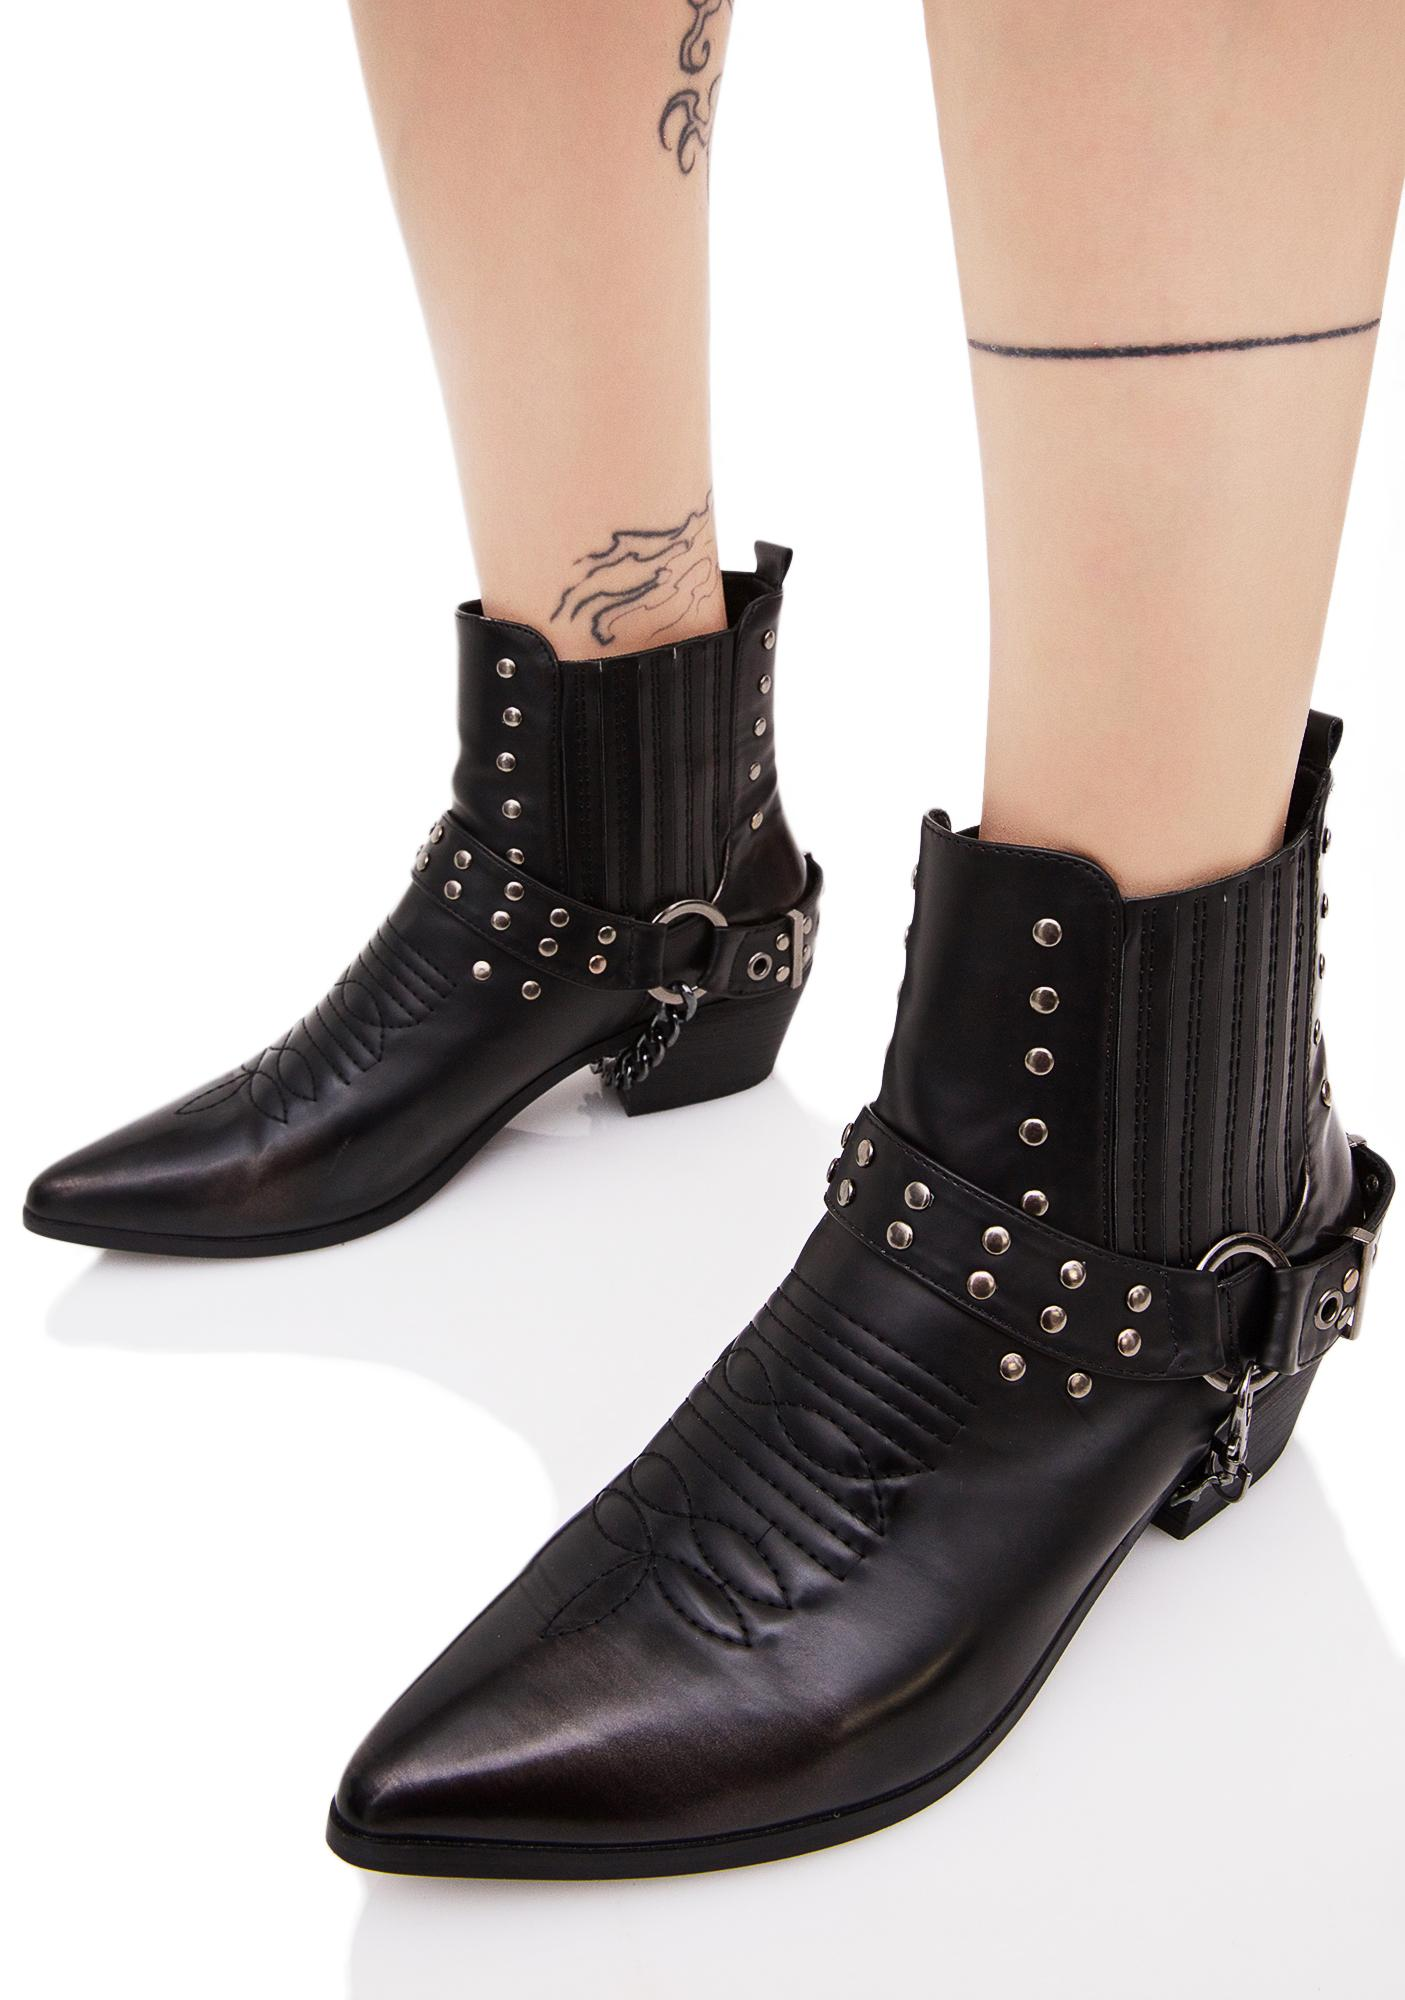 Midnight Gunslinger Chained Boots